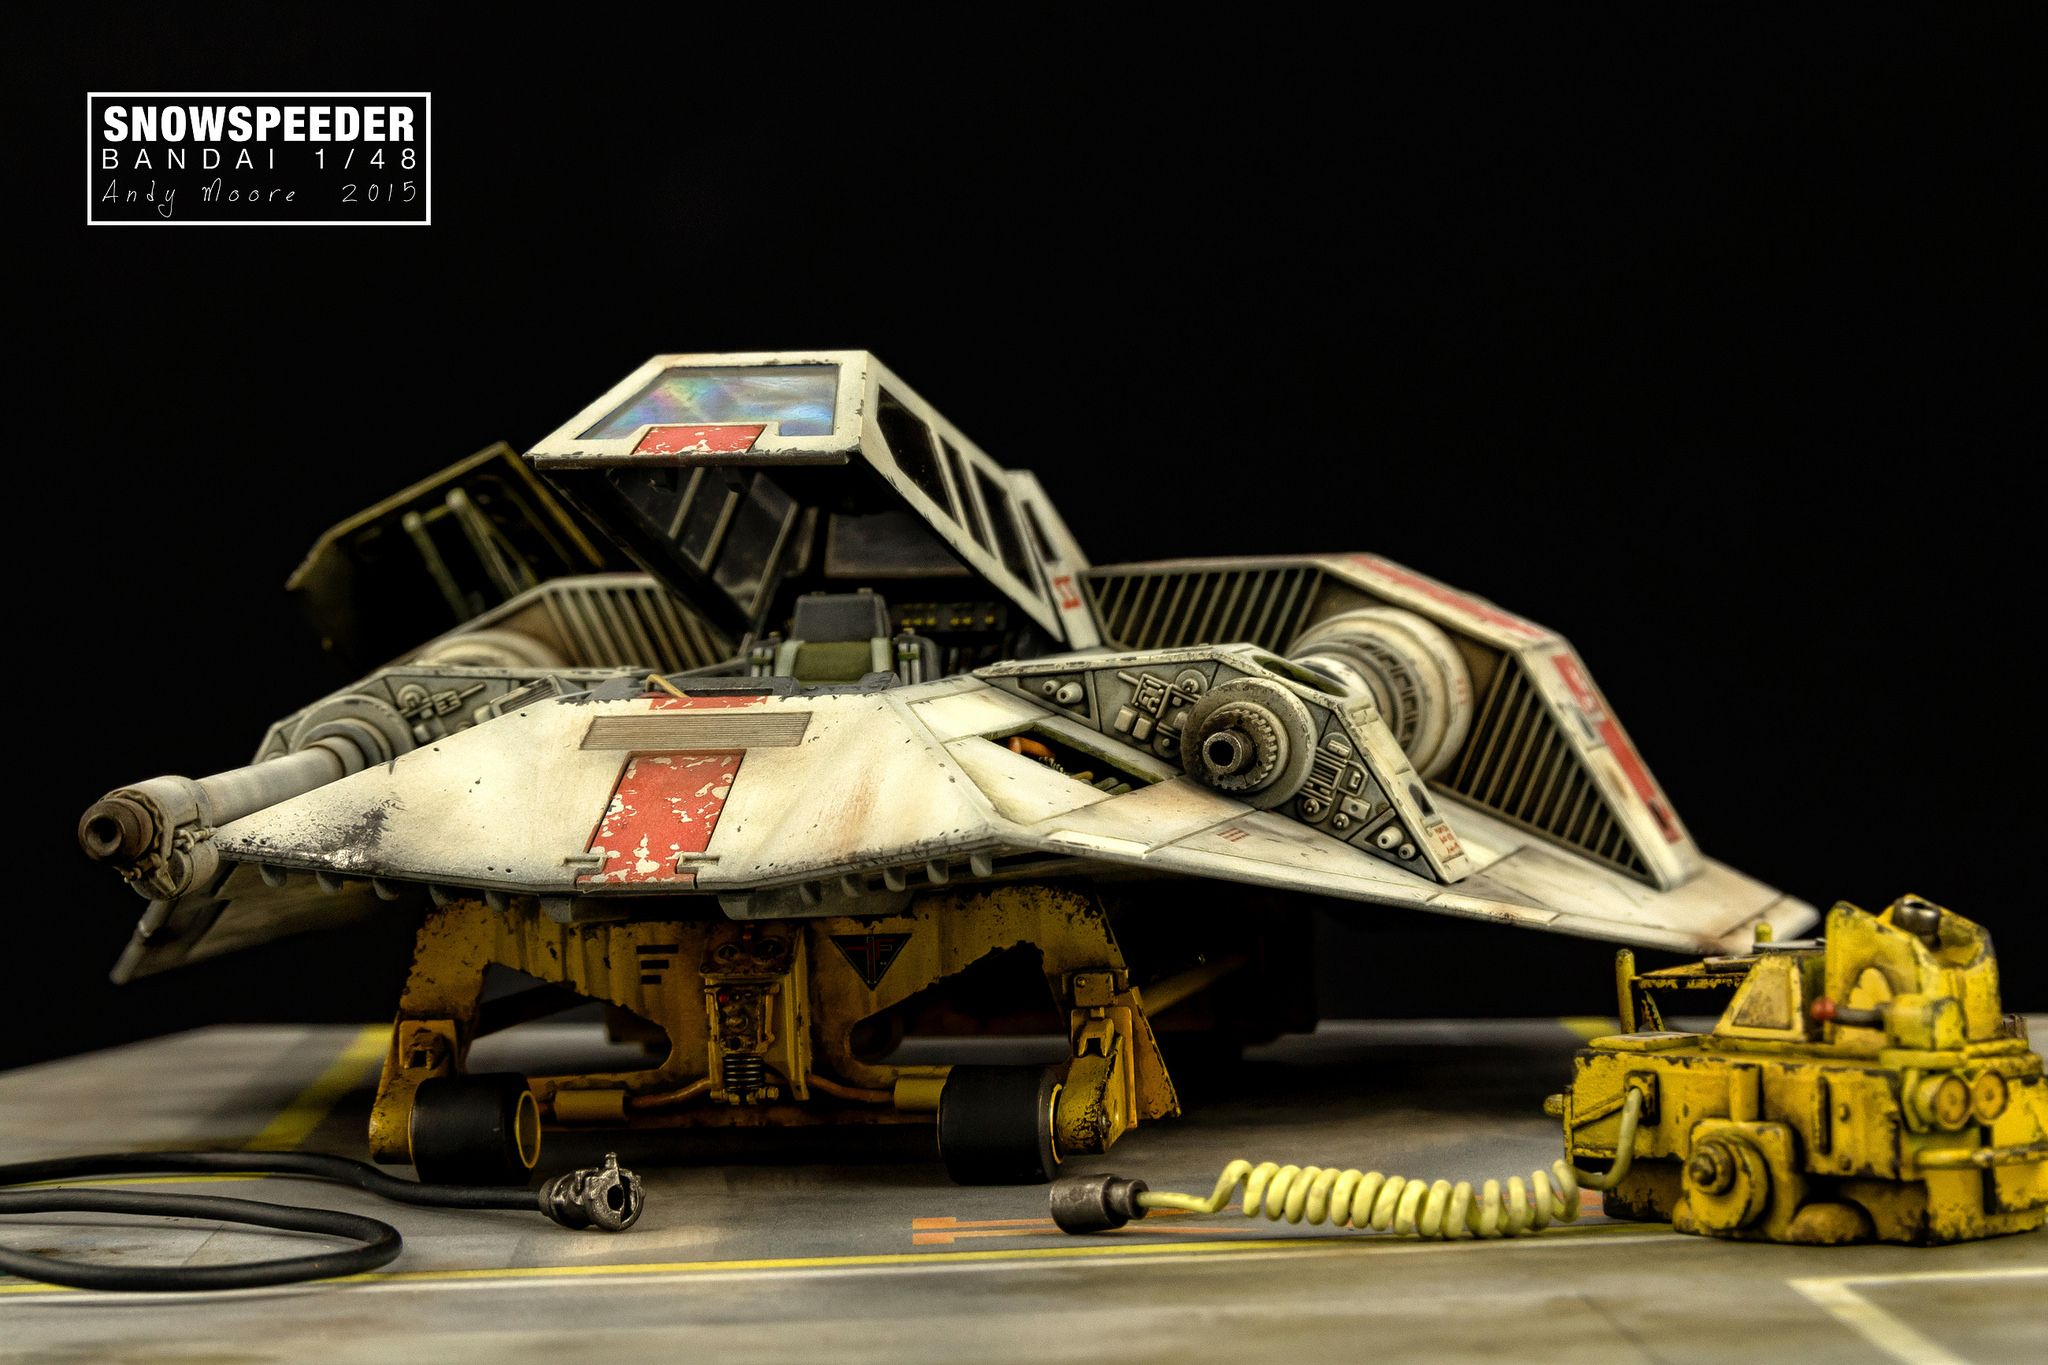 Bandai Snowspeeder | Scale Modeling | Star wars spaceships, Star